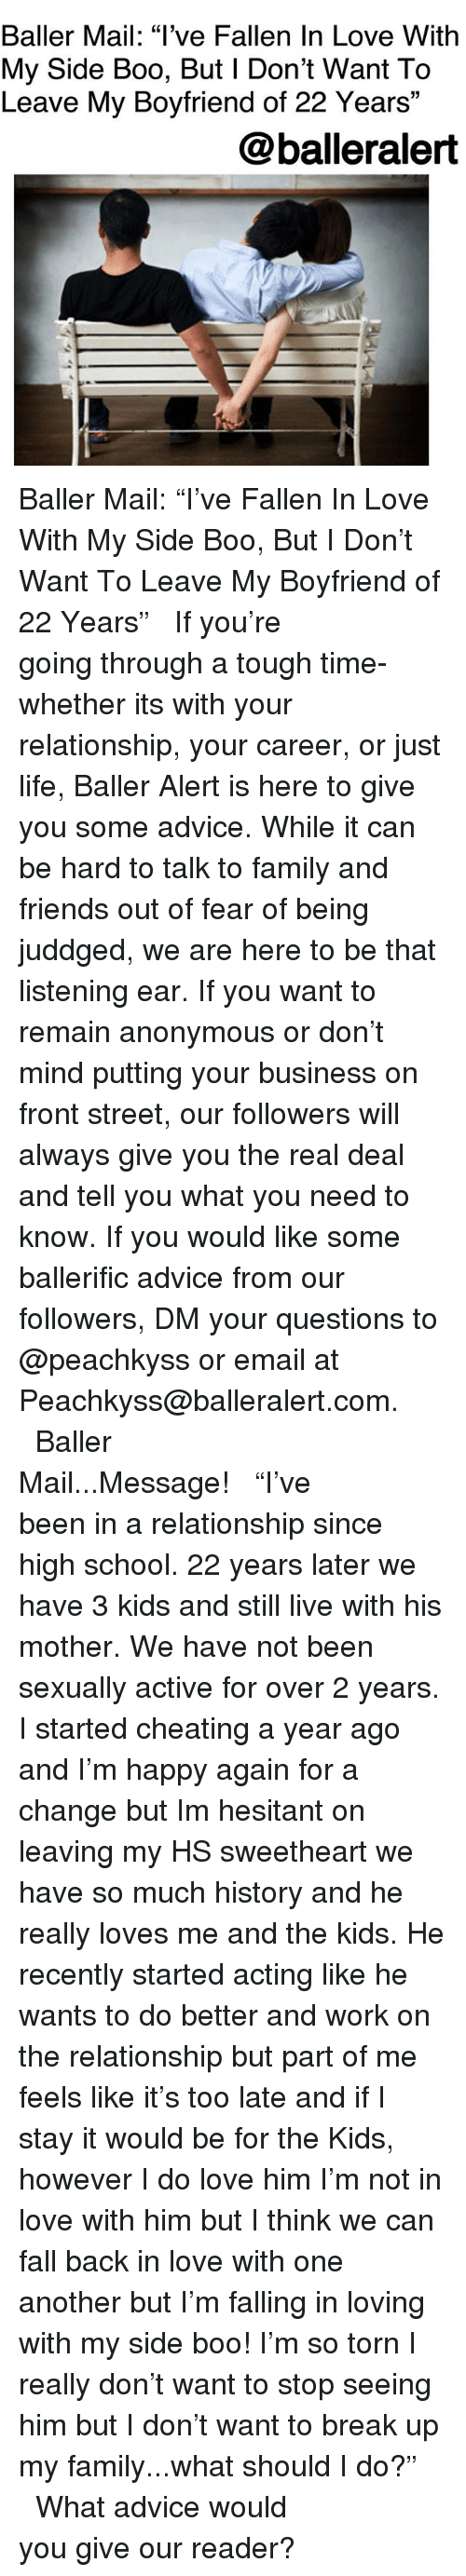 """Advice, Baller Alert, and Boo: Baller Mail: """"l've Fallen In Love With  My Side Boo, But l Don't Want To  Leave My Boyfriend of 22 Years""""  13  @balleralert Baller Mail: """"I've Fallen In Love With My Side Boo, But I Don't Want To Leave My Boyfriend of 22 Years"""" ⠀⠀⠀⠀⠀⠀⠀ ⠀⠀⠀⠀⠀⠀⠀ If you're going through a tough time-whether its with your relationship, your career, or just life, Baller Alert is here to give you some advice. While it can be hard to talk to family and friends out of fear of being juddged, we are here to be that listening ear. If you want to remain anonymous or don't mind putting your business on front street, our followers will always give you the real deal and tell you what you need to know. If you would like some ballerific advice from our followers, DM your questions to @peachkyss or email at Peachkyss@balleralert.com. ⠀⠀⠀⠀⠀⠀⠀ ⠀⠀⠀⠀⠀⠀⠀ Baller Mail...Message! ⠀⠀⠀⠀⠀⠀⠀ ⠀⠀⠀⠀⠀⠀⠀ """"I've been in a relationship since high school. 22 years later we have 3 kids and still live with his mother. We have not been sexually active for over 2 years. I️ started cheating a year ago and I'm happy again for a change but I️m hesitant on leaving my HS sweetheart we have so much history and he really loves me and the kids. He recently started acting like he wants to do better and work on the relationship but part of me feels like it's too late and if I️ stay it would be for the Kids, however I️ do love him I'm not in love with him but I️ think we can fall back in love with one another but I'm falling in loving with my side boo! I'm so torn I️ really don't want to stop seeing him but I️ don't want to break up my family...what should I do?"""" ⠀⠀⠀⠀⠀⠀⠀ ⠀⠀⠀⠀⠀⠀⠀ What advice would you give our reader?"""